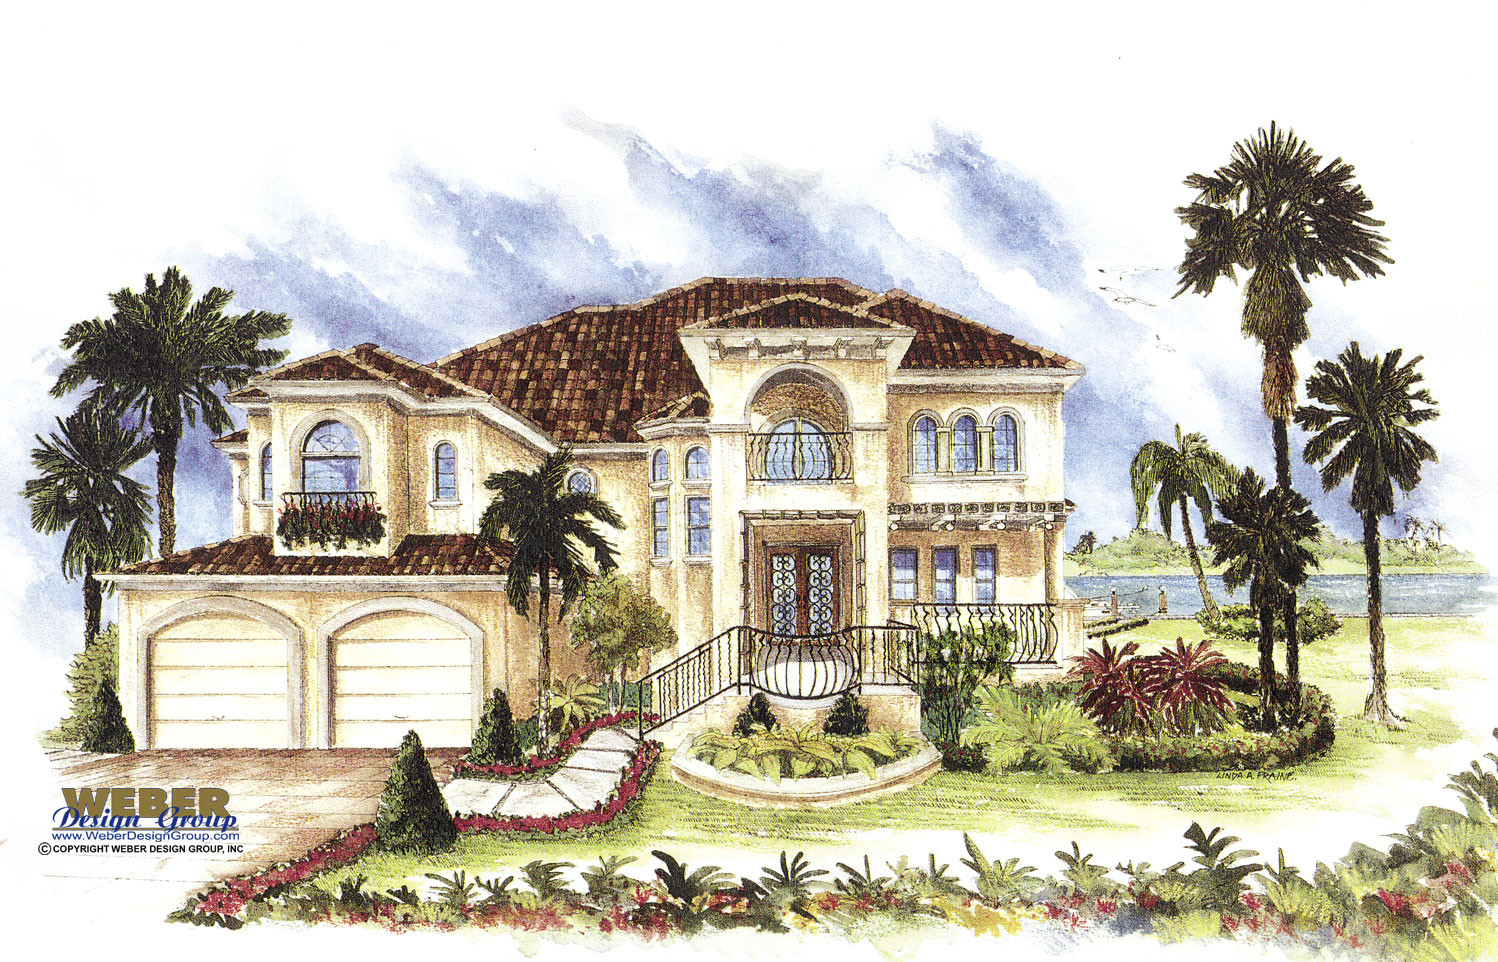 Mediterranean House Plan: 2 Story Luxury Home Floor Plan